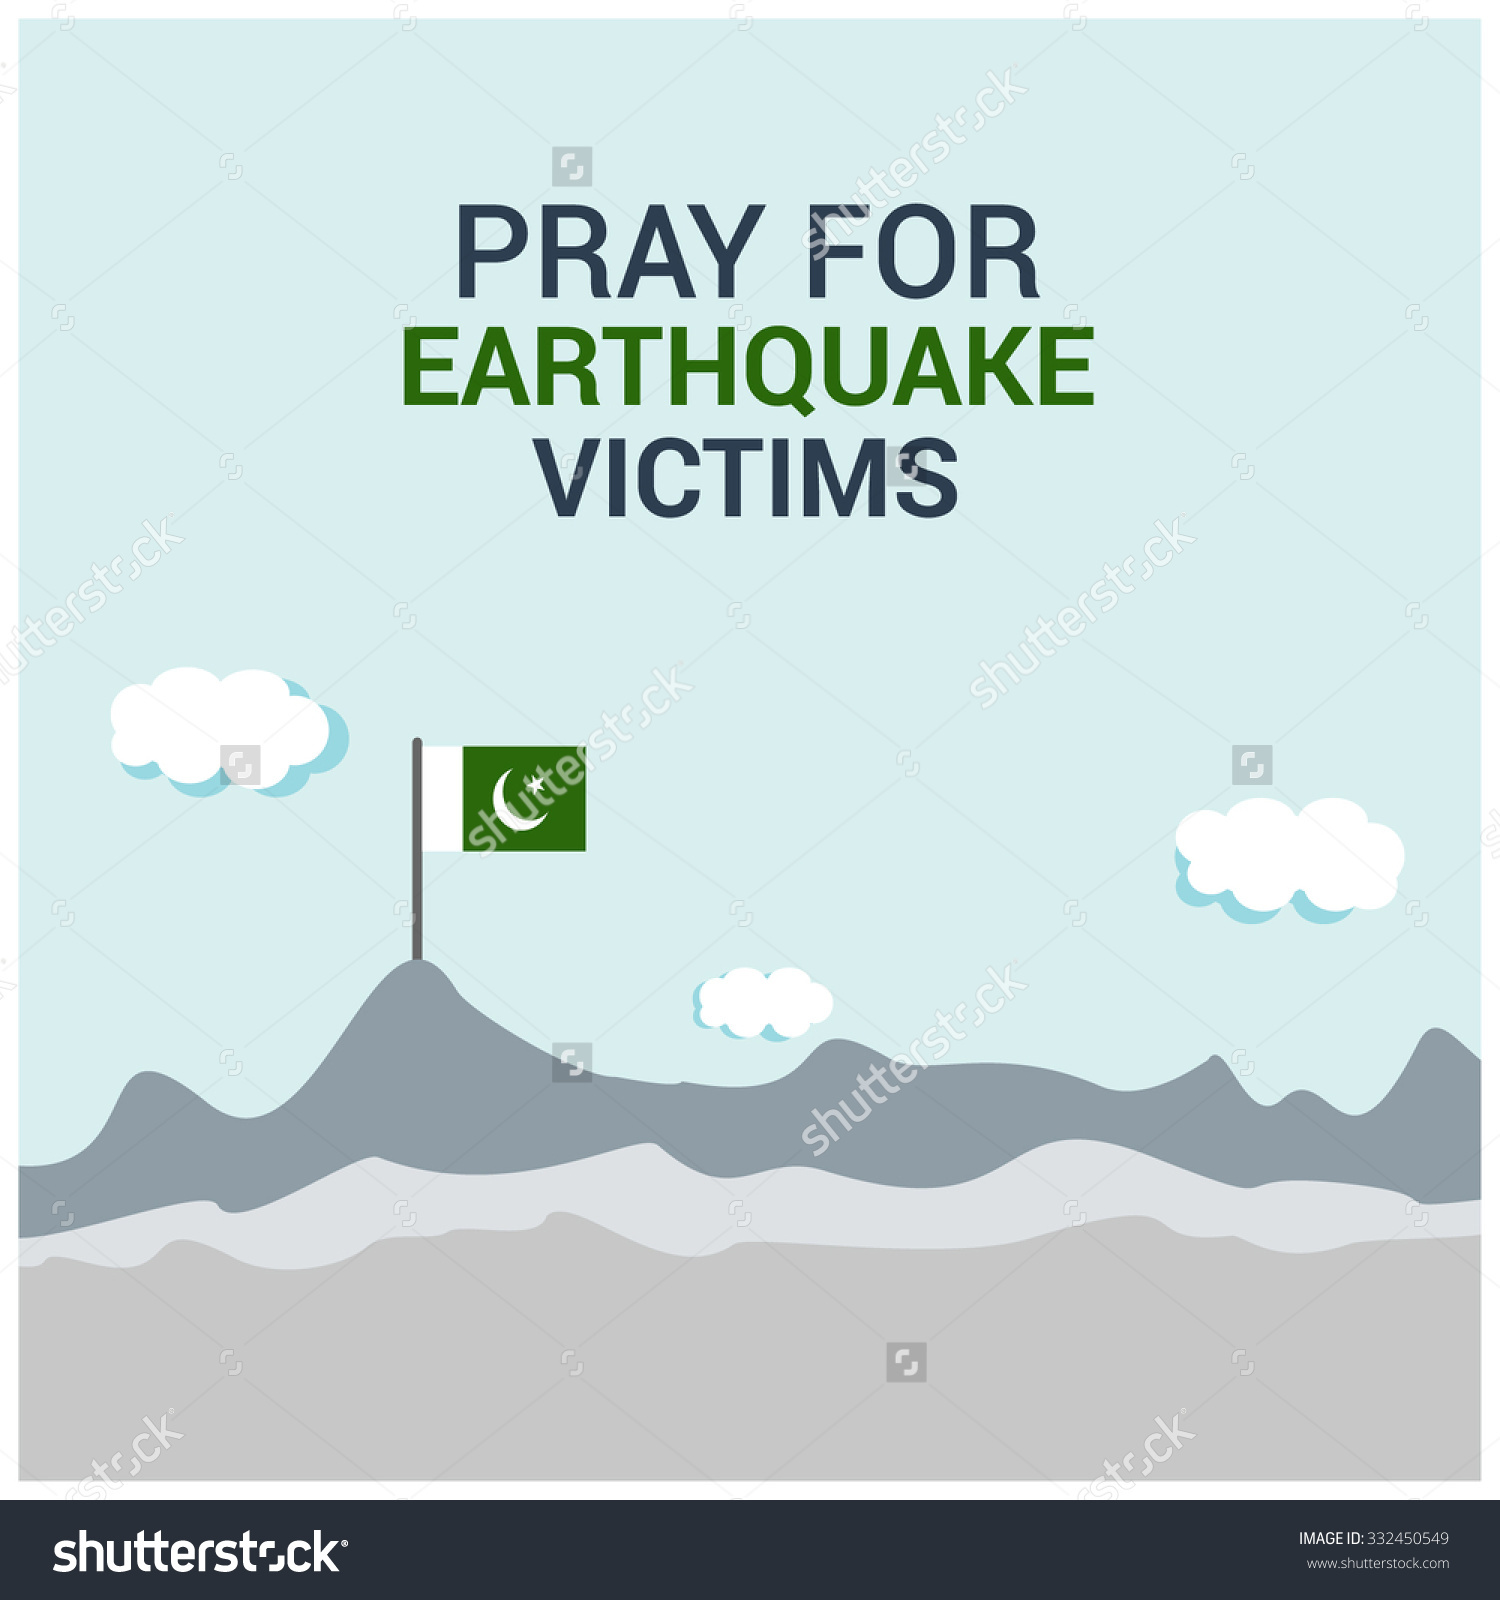 Pray Earthquake Victims Pakistan Template Pray Stock Vector.